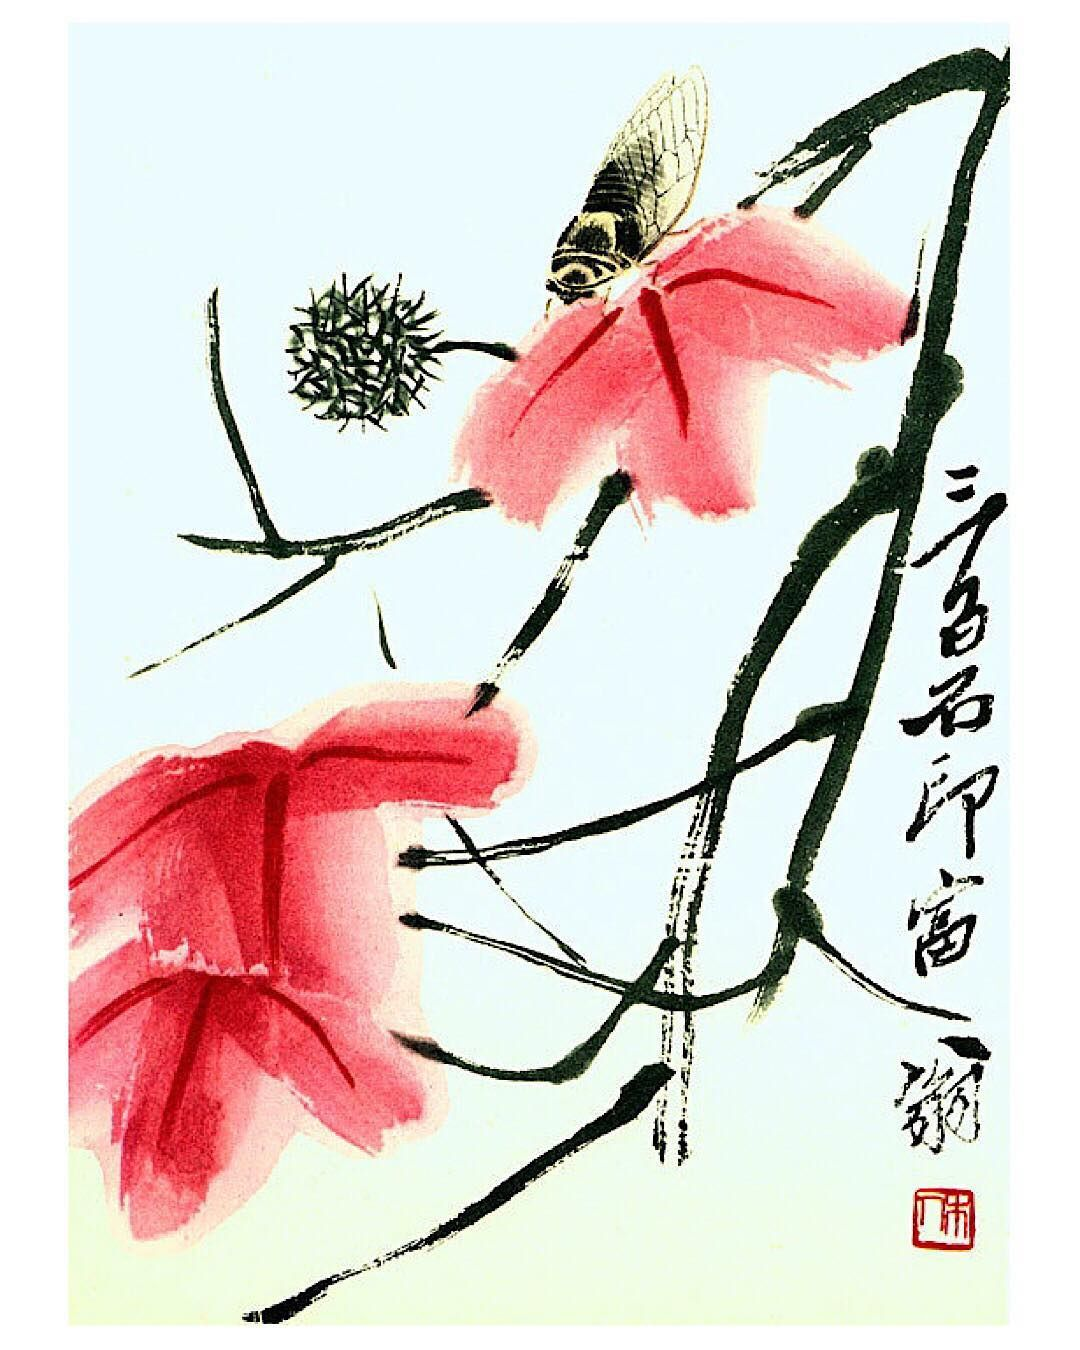 Chinese Painter Qi Baishi Was Born Otd In 1864 This Is Painting Of A Cicada Art Via Marierochon Chinese Art Painting Asian Art Oriental Art